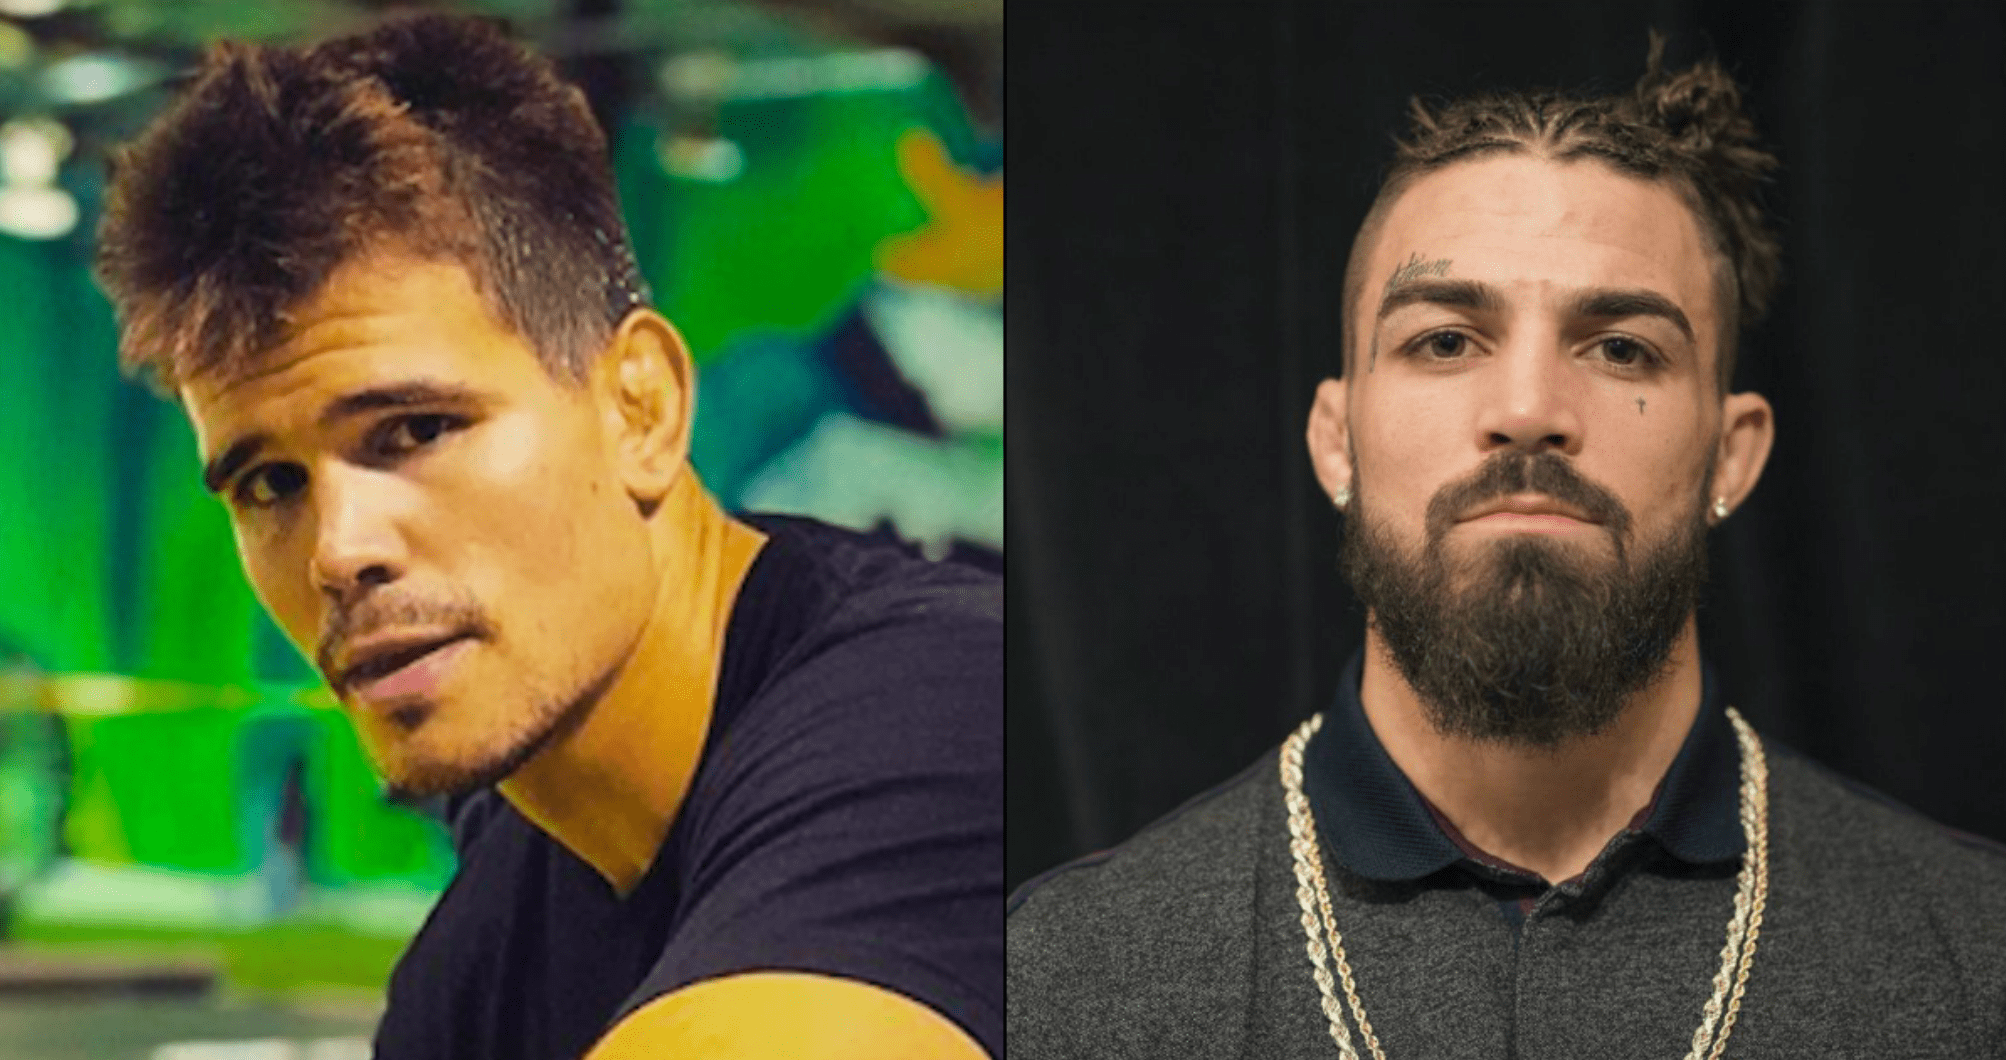 UFC: Mickey Gall Reacts To Mike Perry's Unique Corner Setup